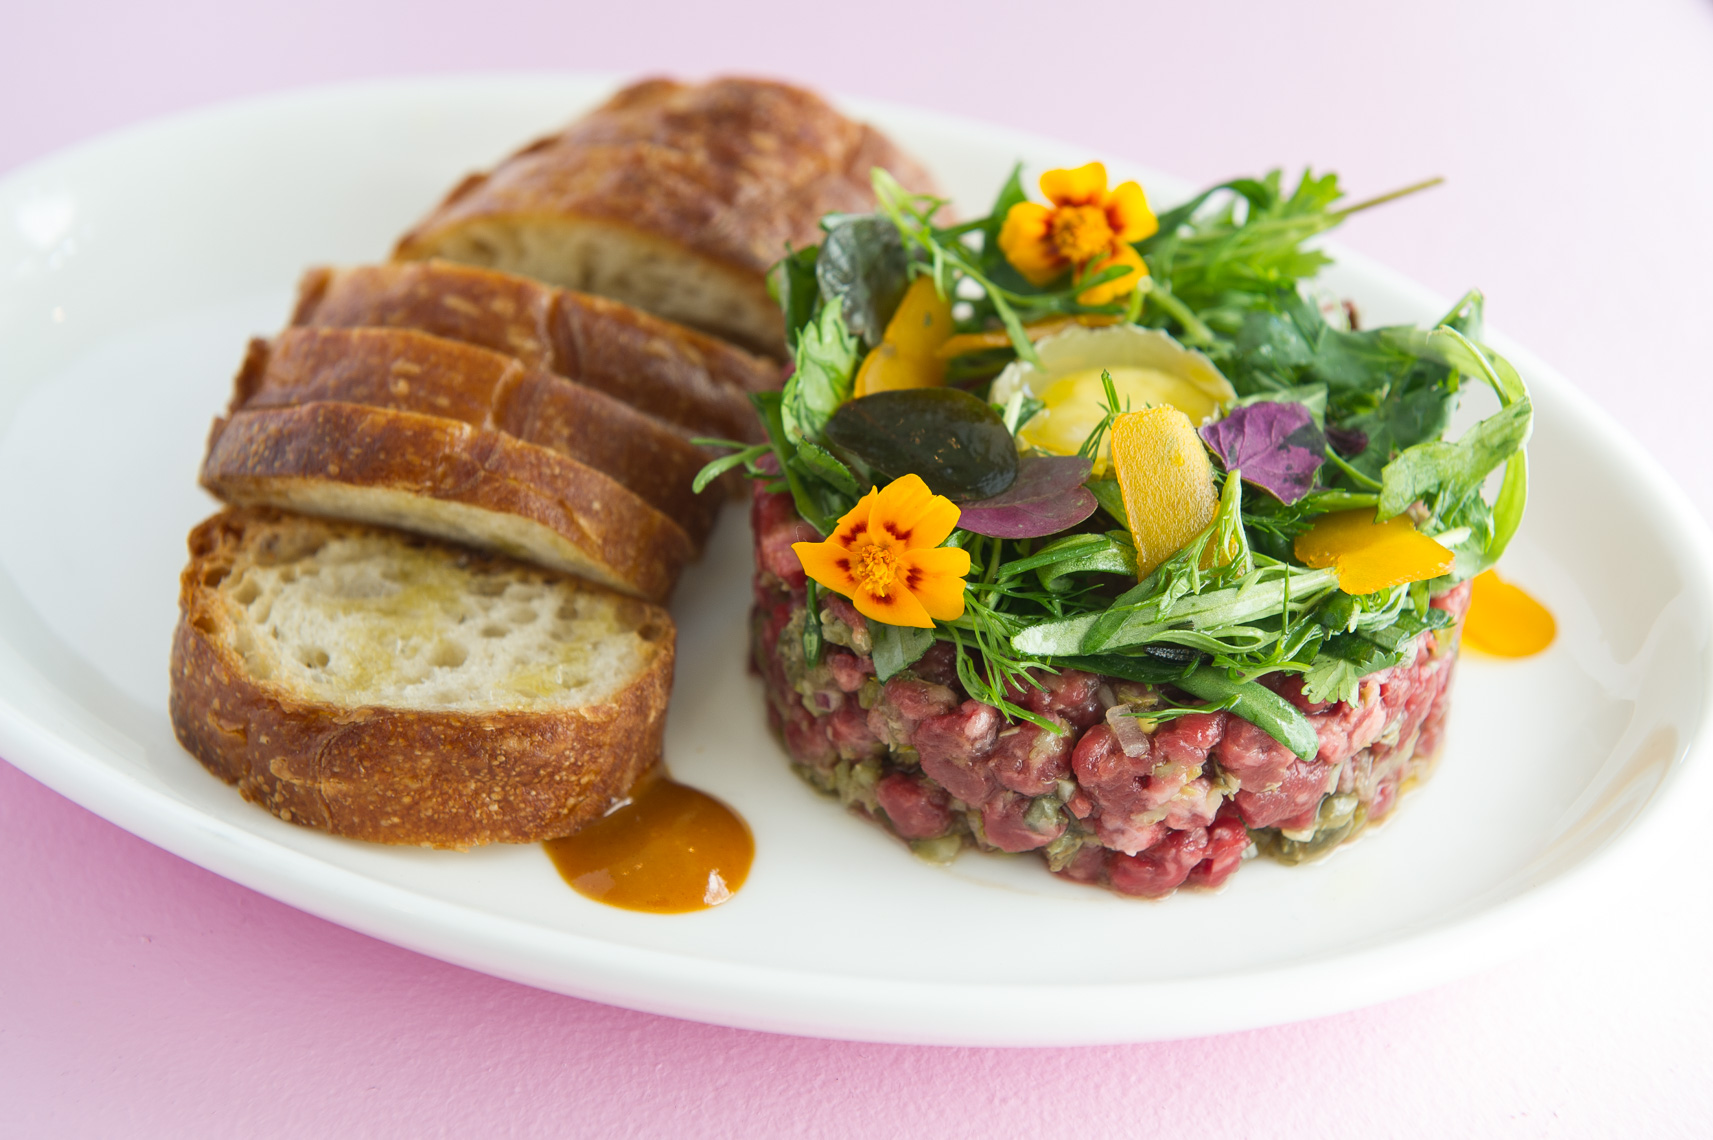 NYC Food Photographer - Steak Tartar The Upsider